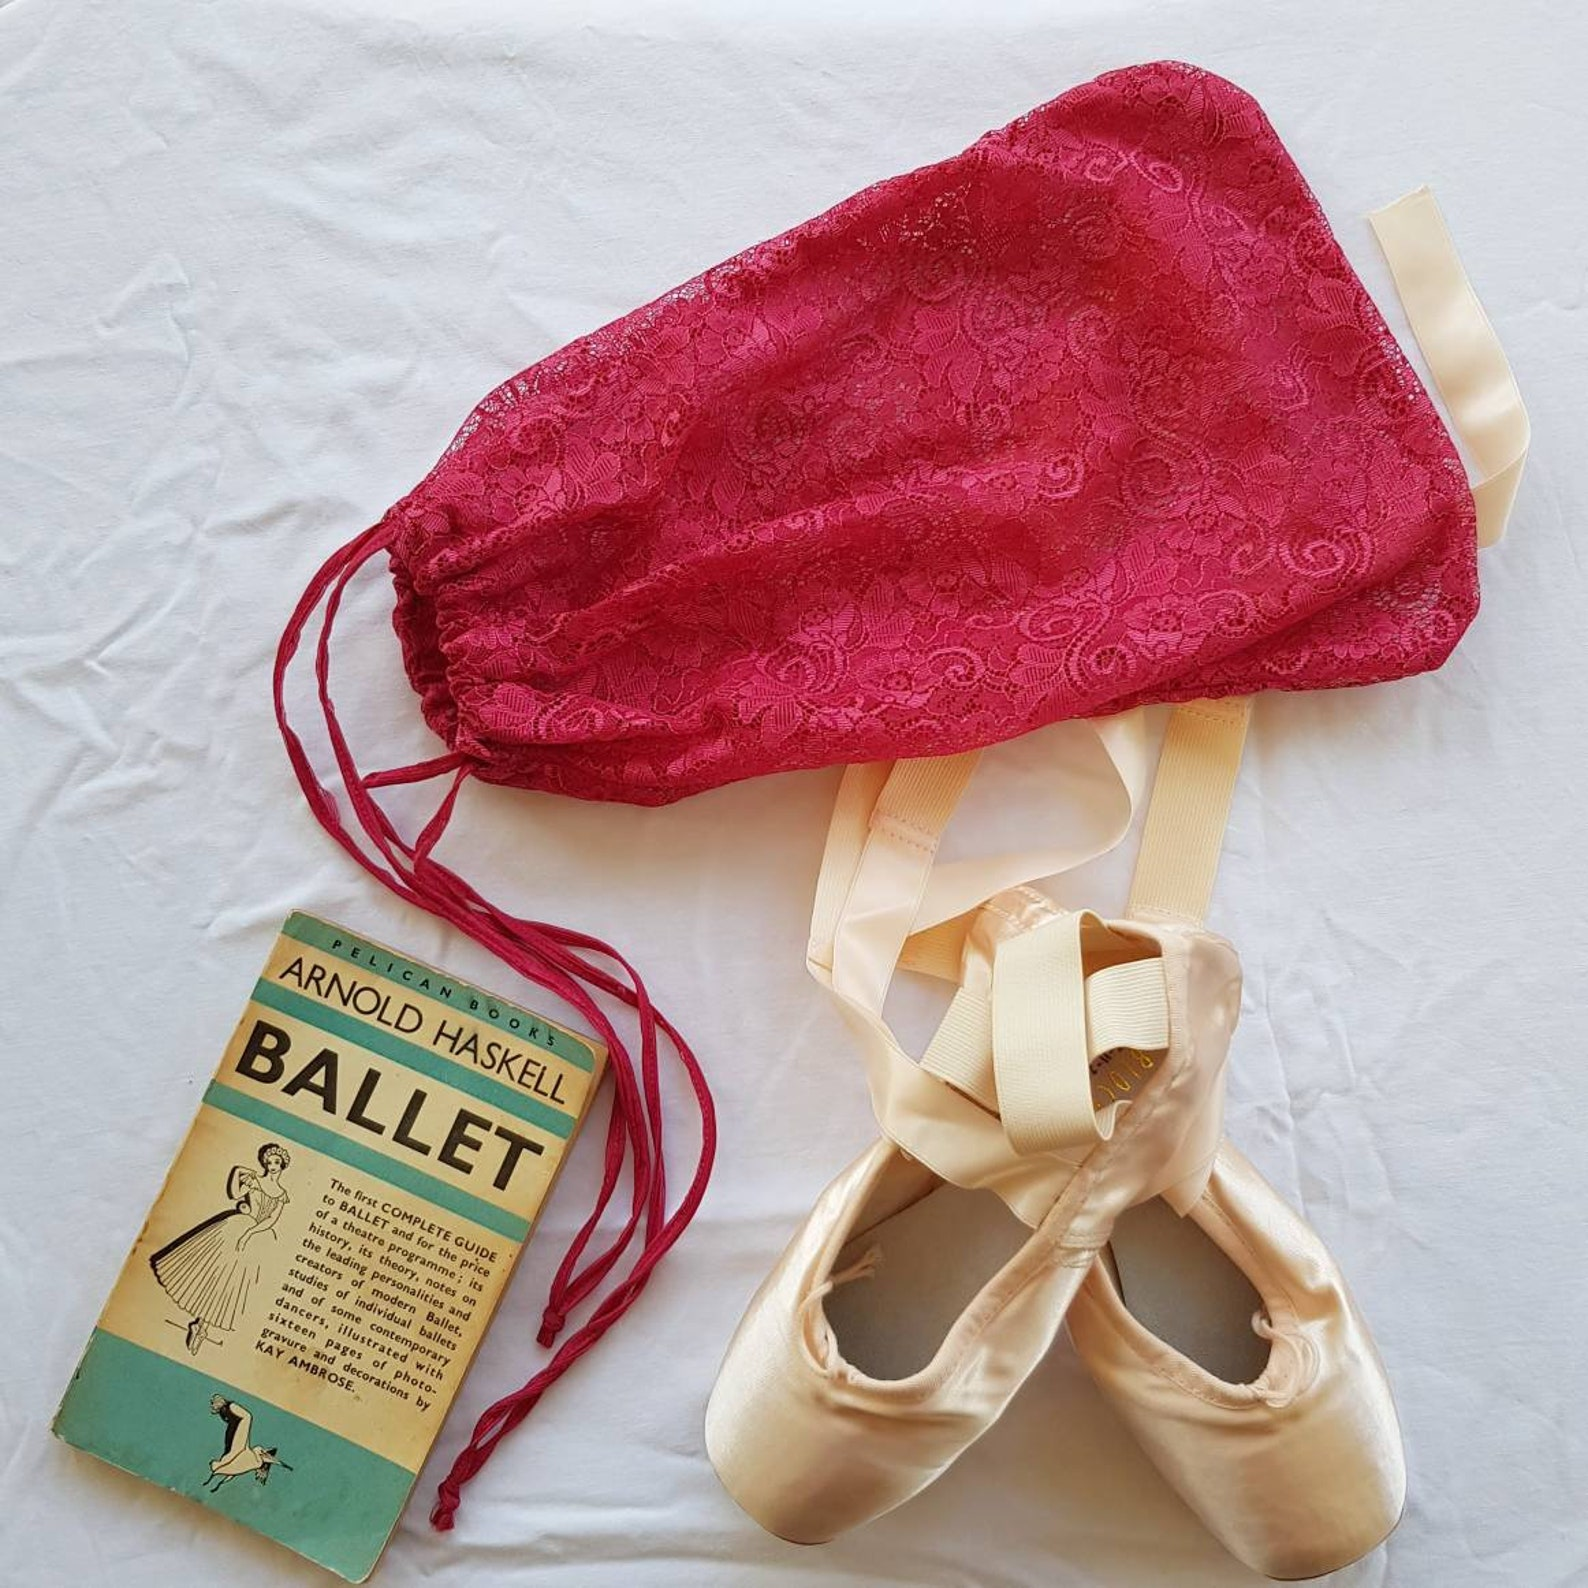 pointe shoe bag - ballet shoe bag - dance shoe bag - dance gift - ballet gift - small bag - gift for dancer - drawstring bag